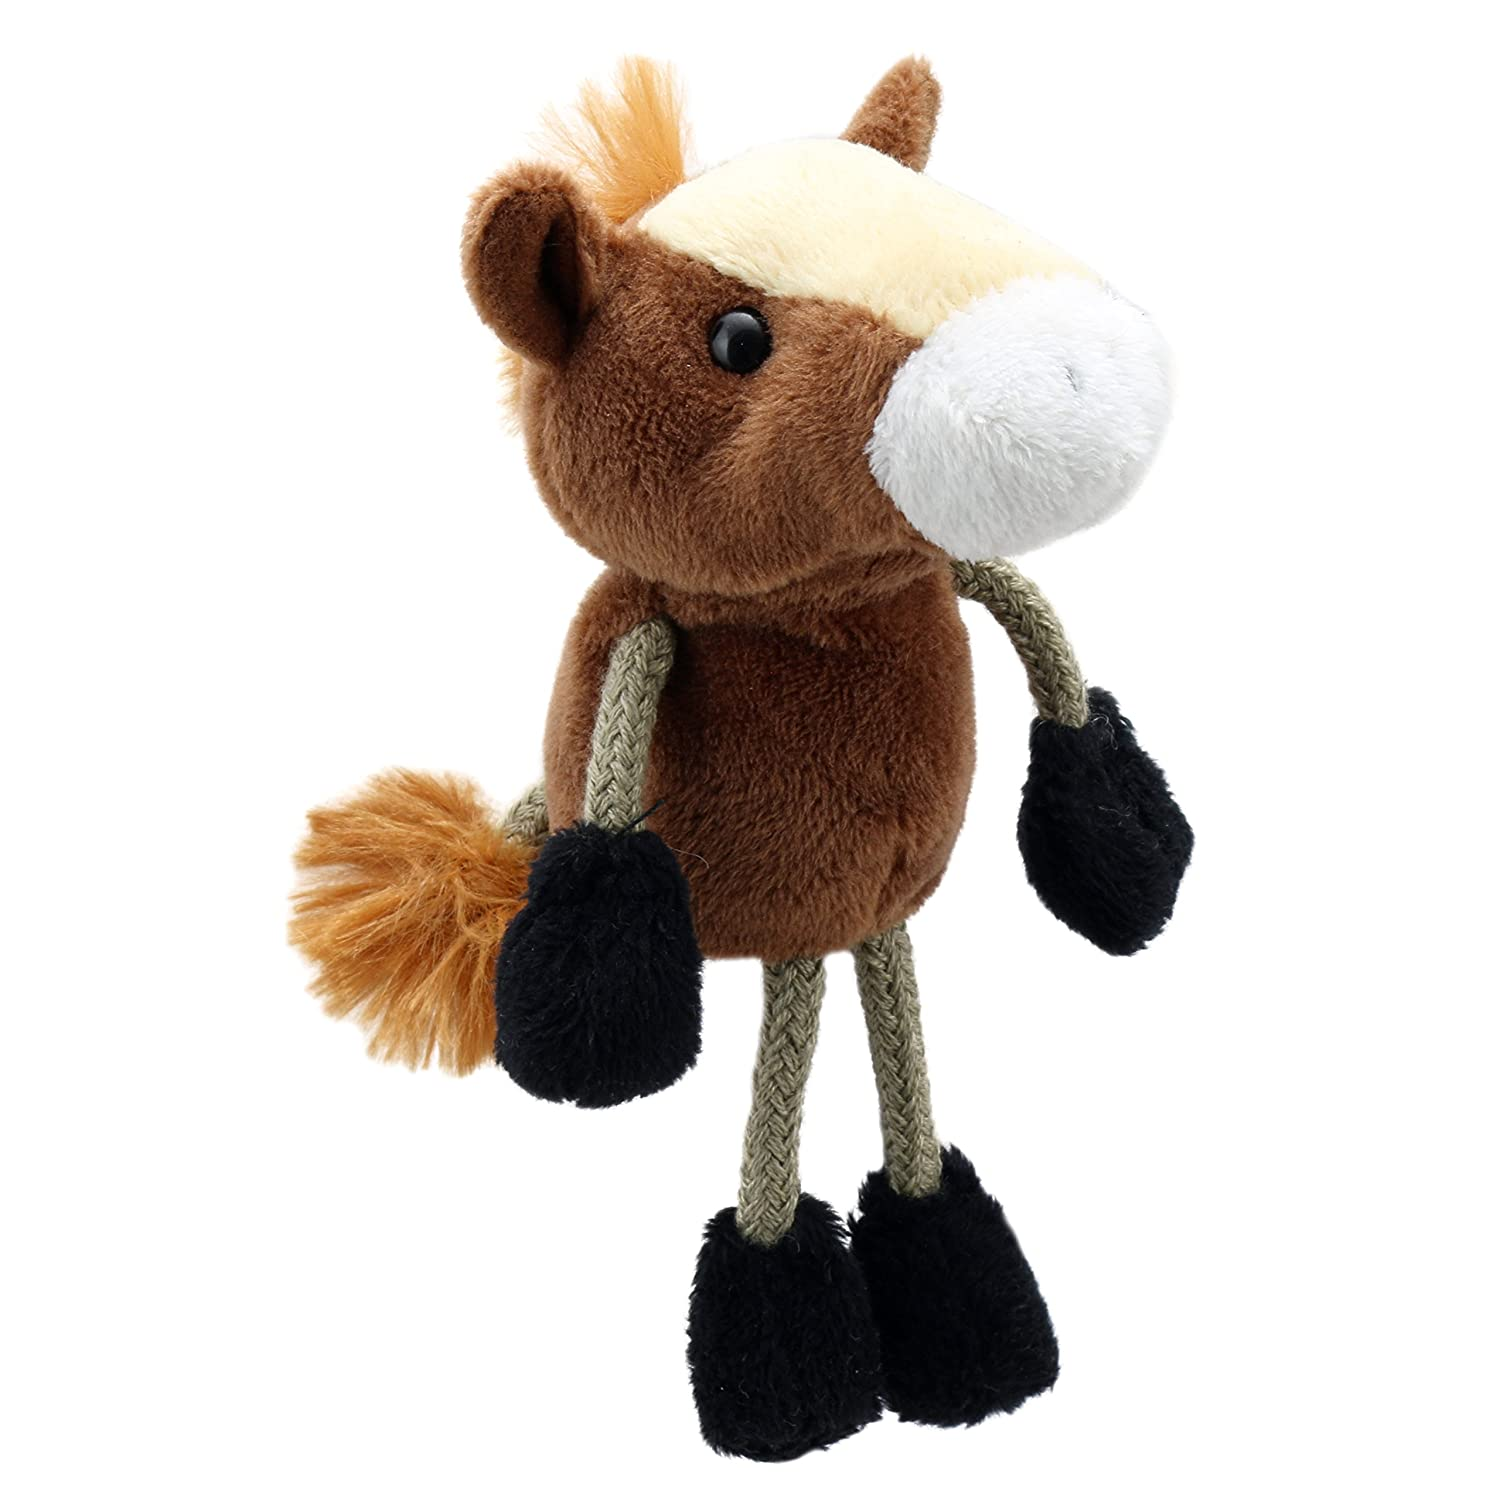 The Puppet Company - Finger Puppets - Horse PC020213